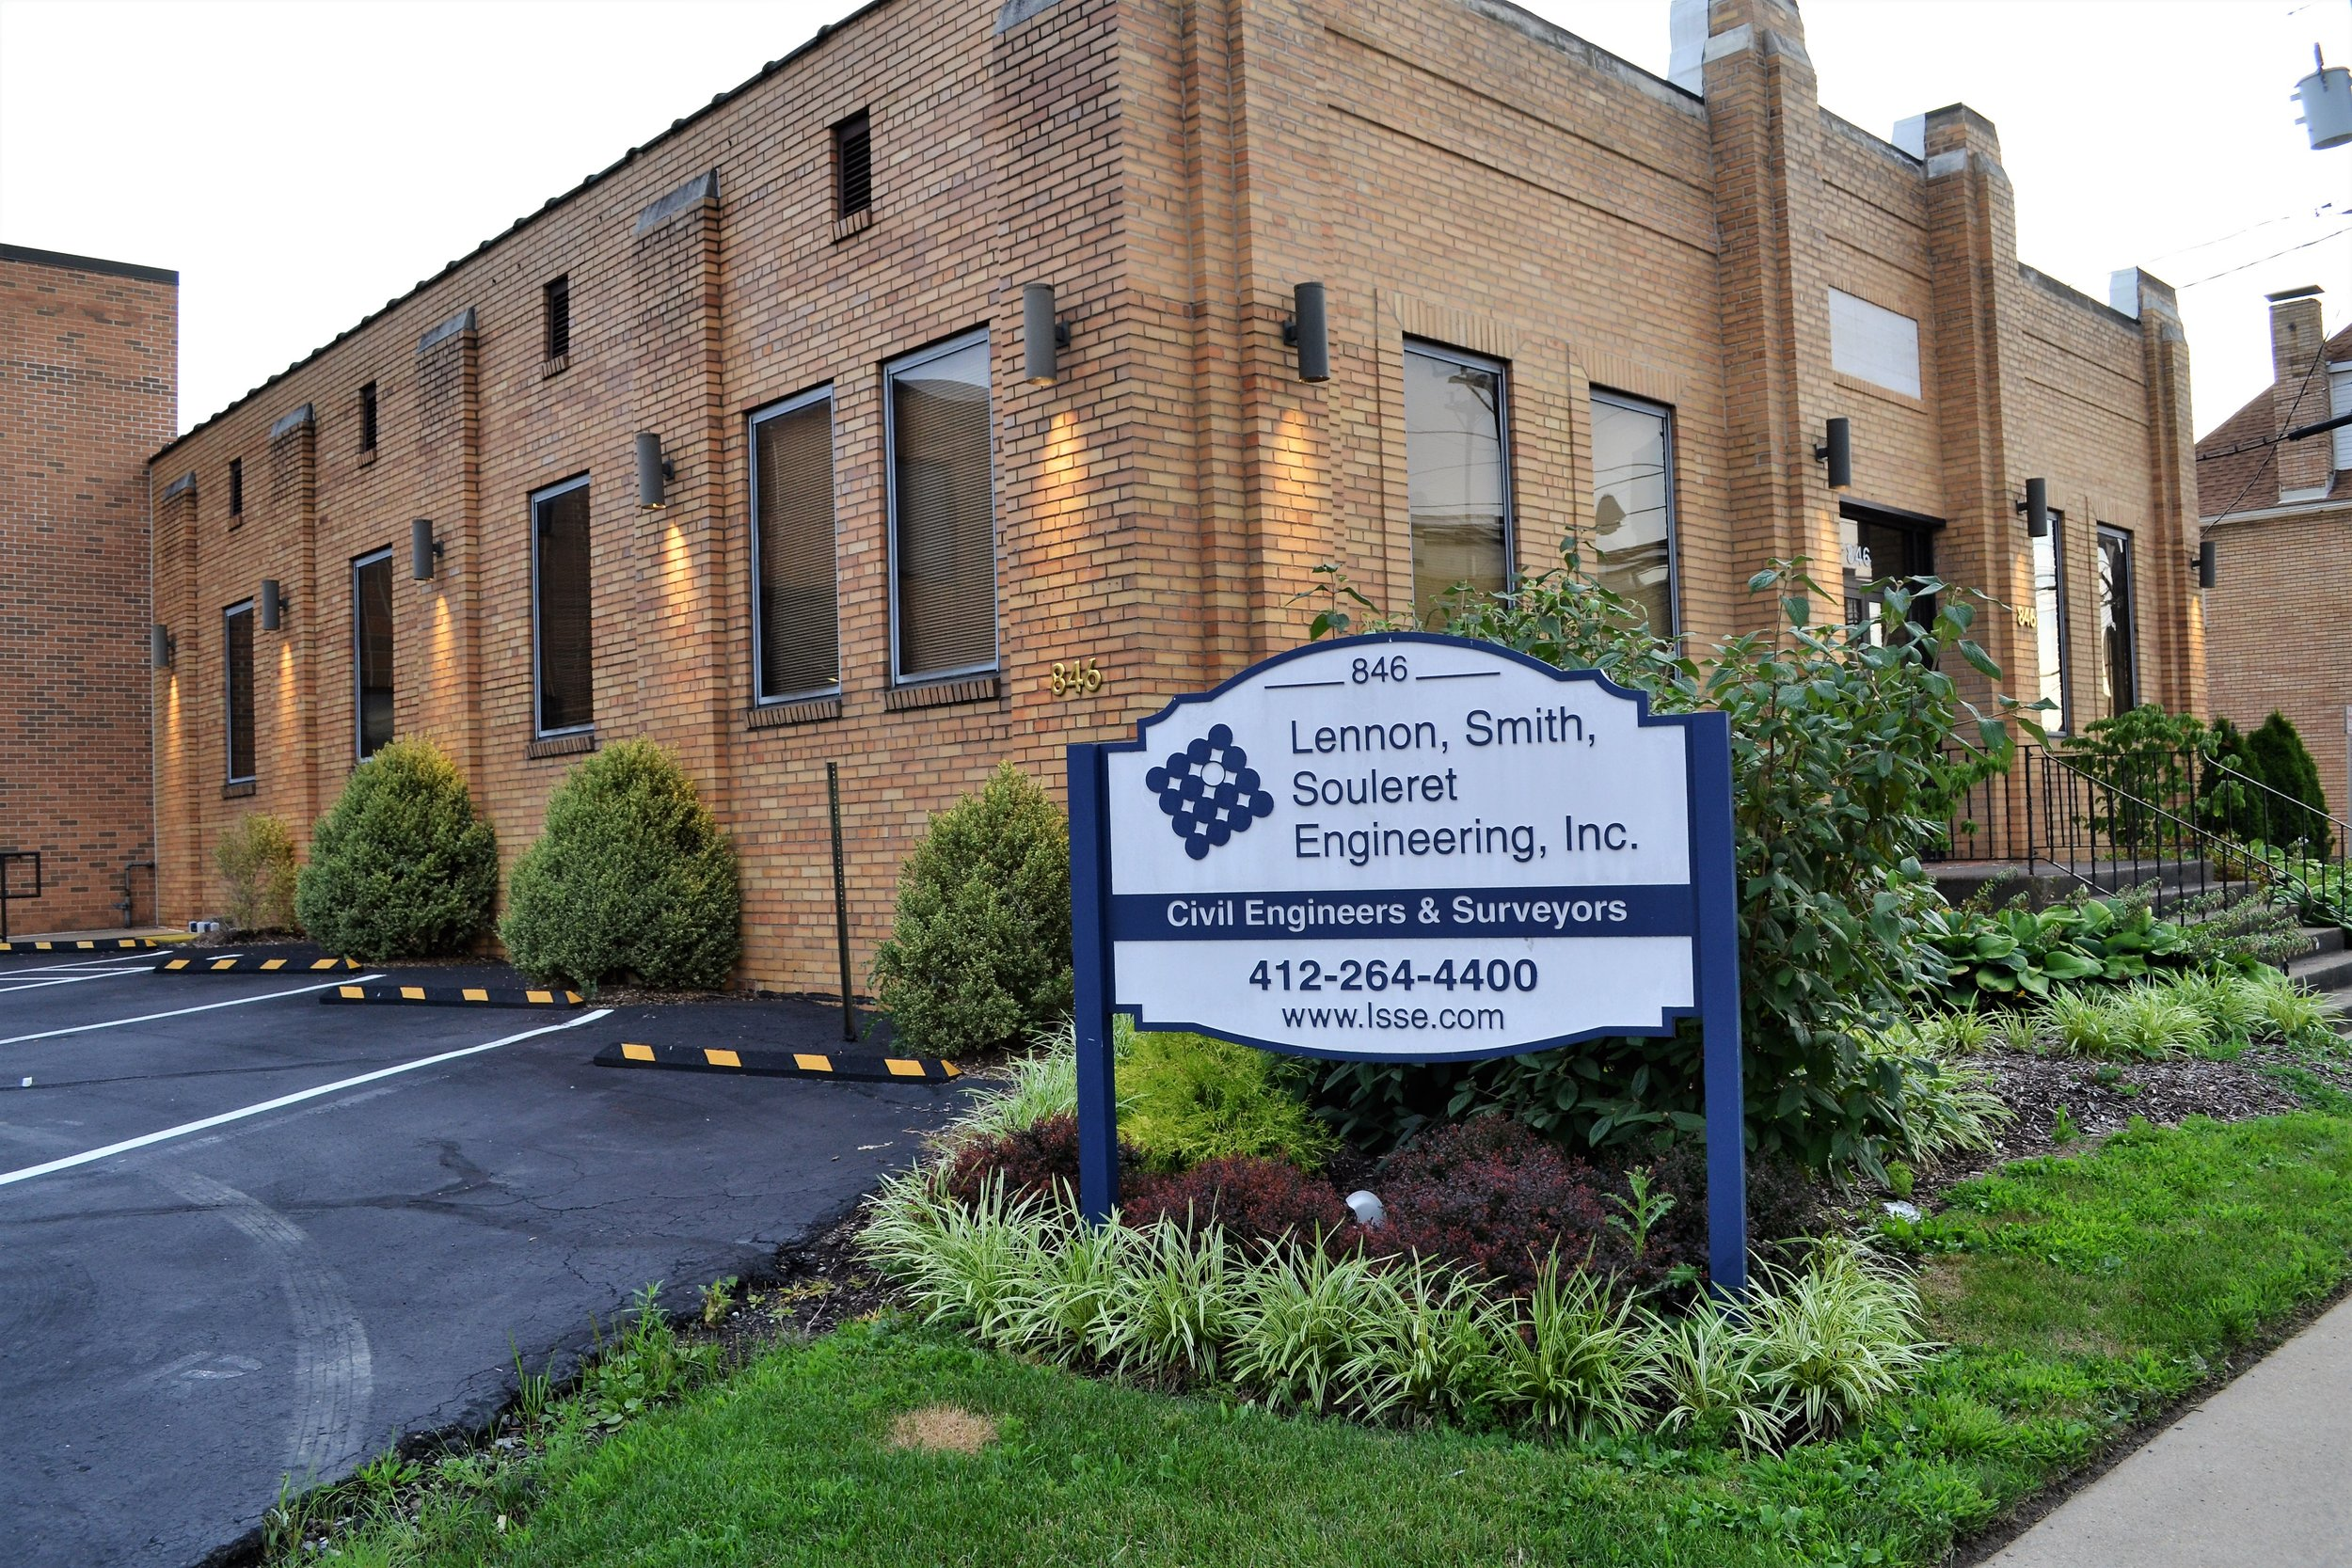 Lennon, Smith, Souleret Engineering - 846 4th Ave, (412) 264-4400